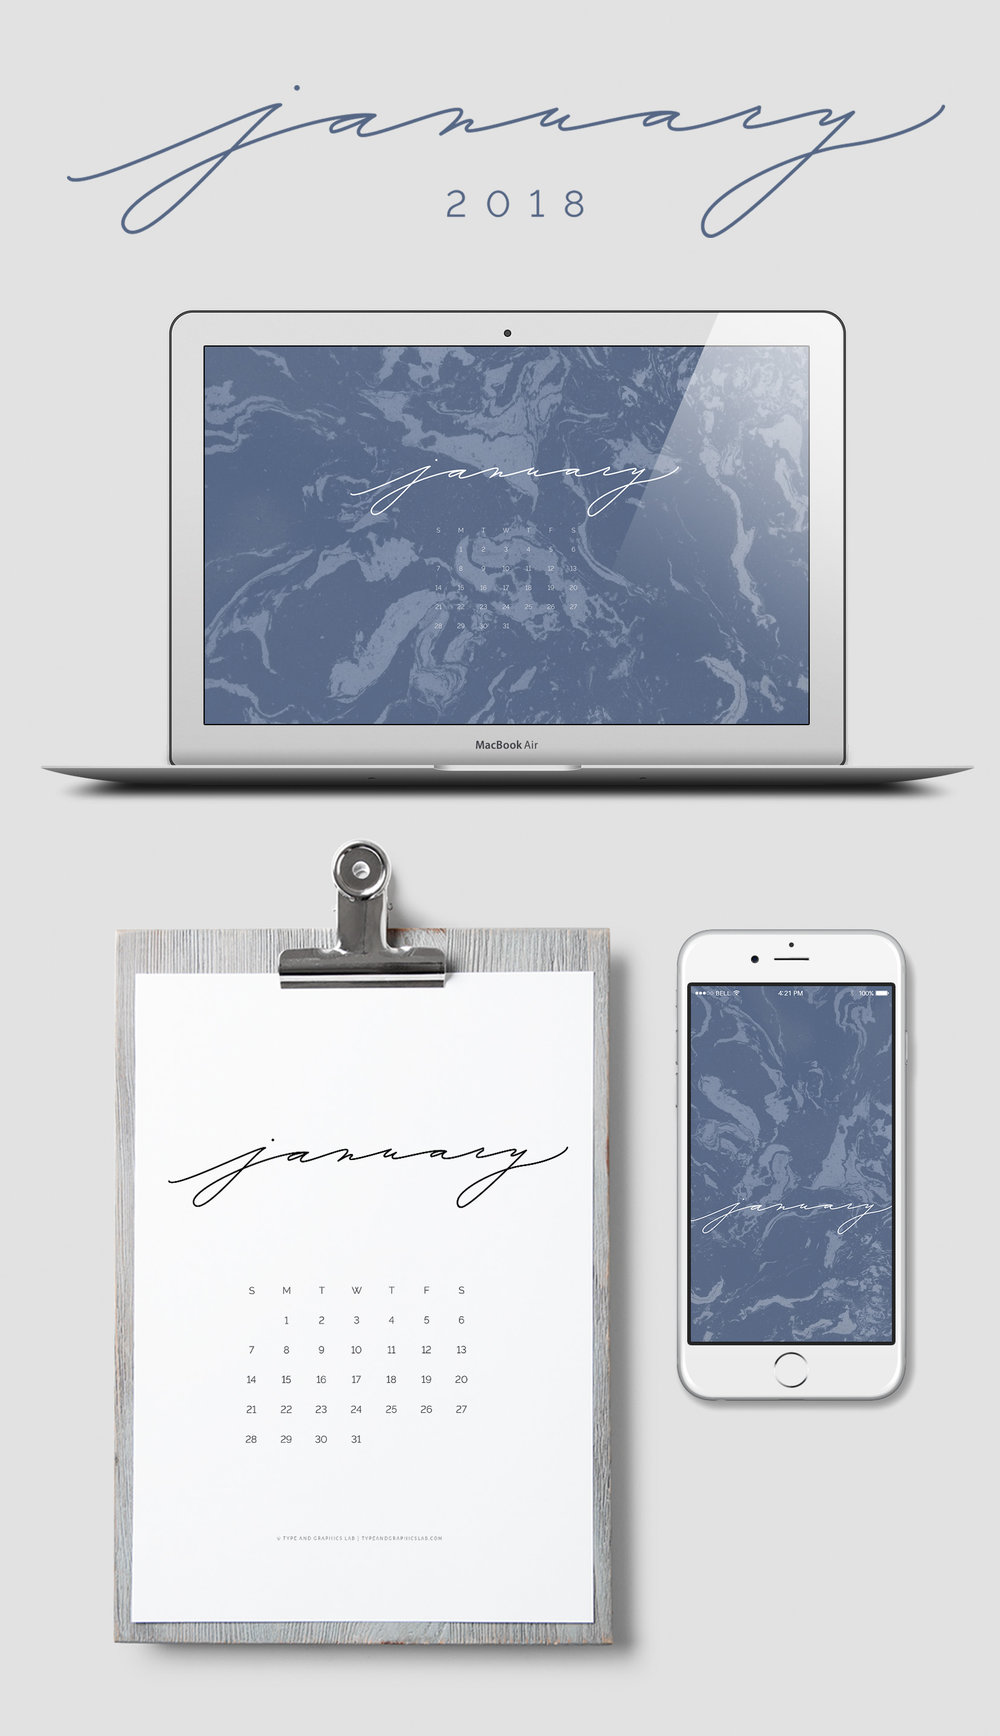 Download free desktop, mobile, and printable calendar for January 2018 | © typeandgraphicslab.com | For personal use only